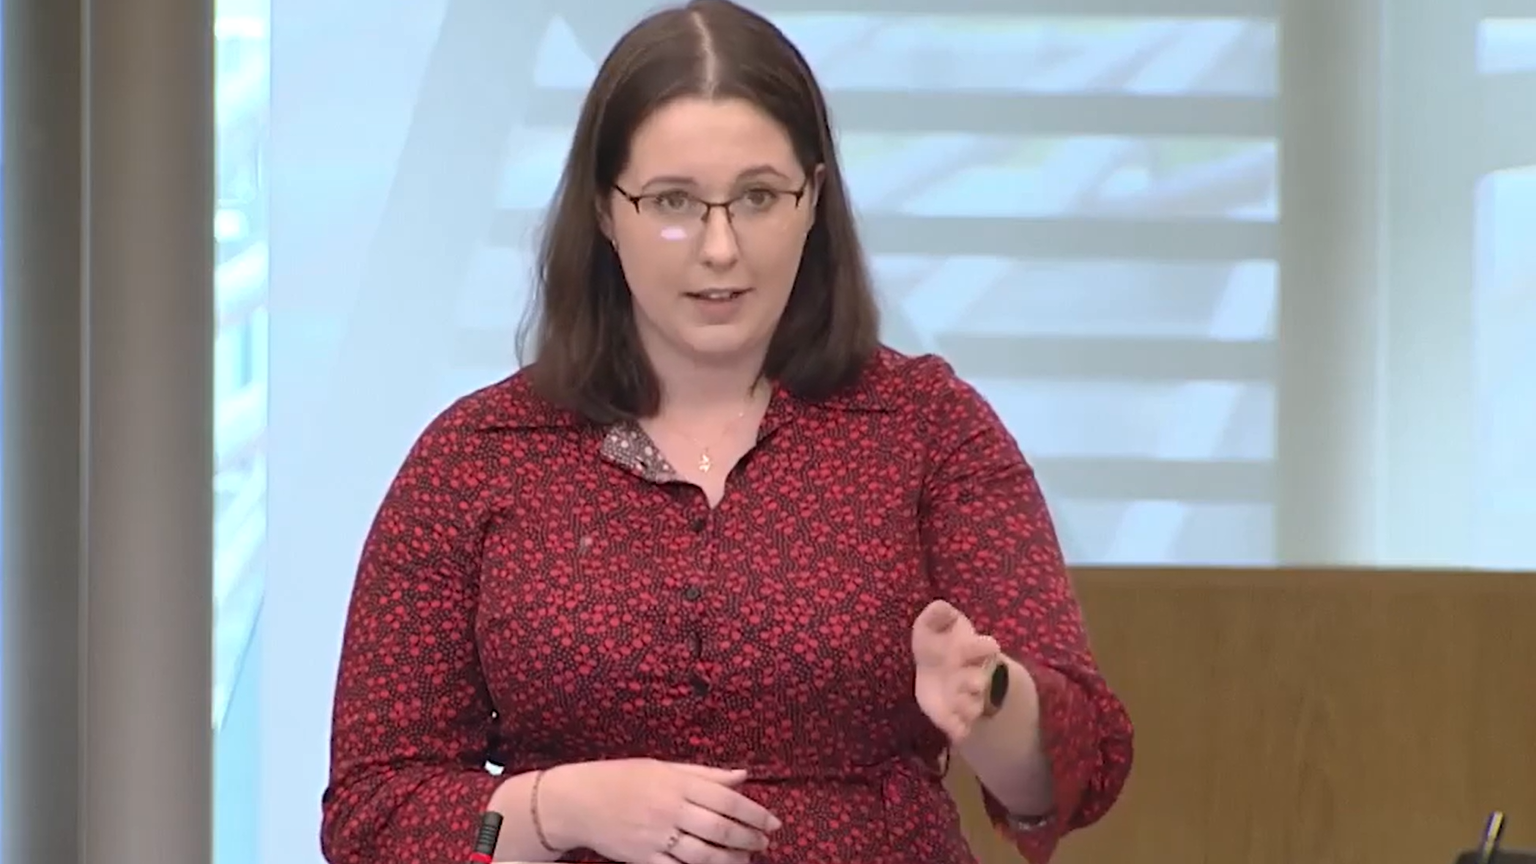 Still from a video. Emma Roddick, 24yo with shoulder-length brown hair and brown glasses and a red dress on, gestures while making a speech in the Scottish Parliament debating chamber.